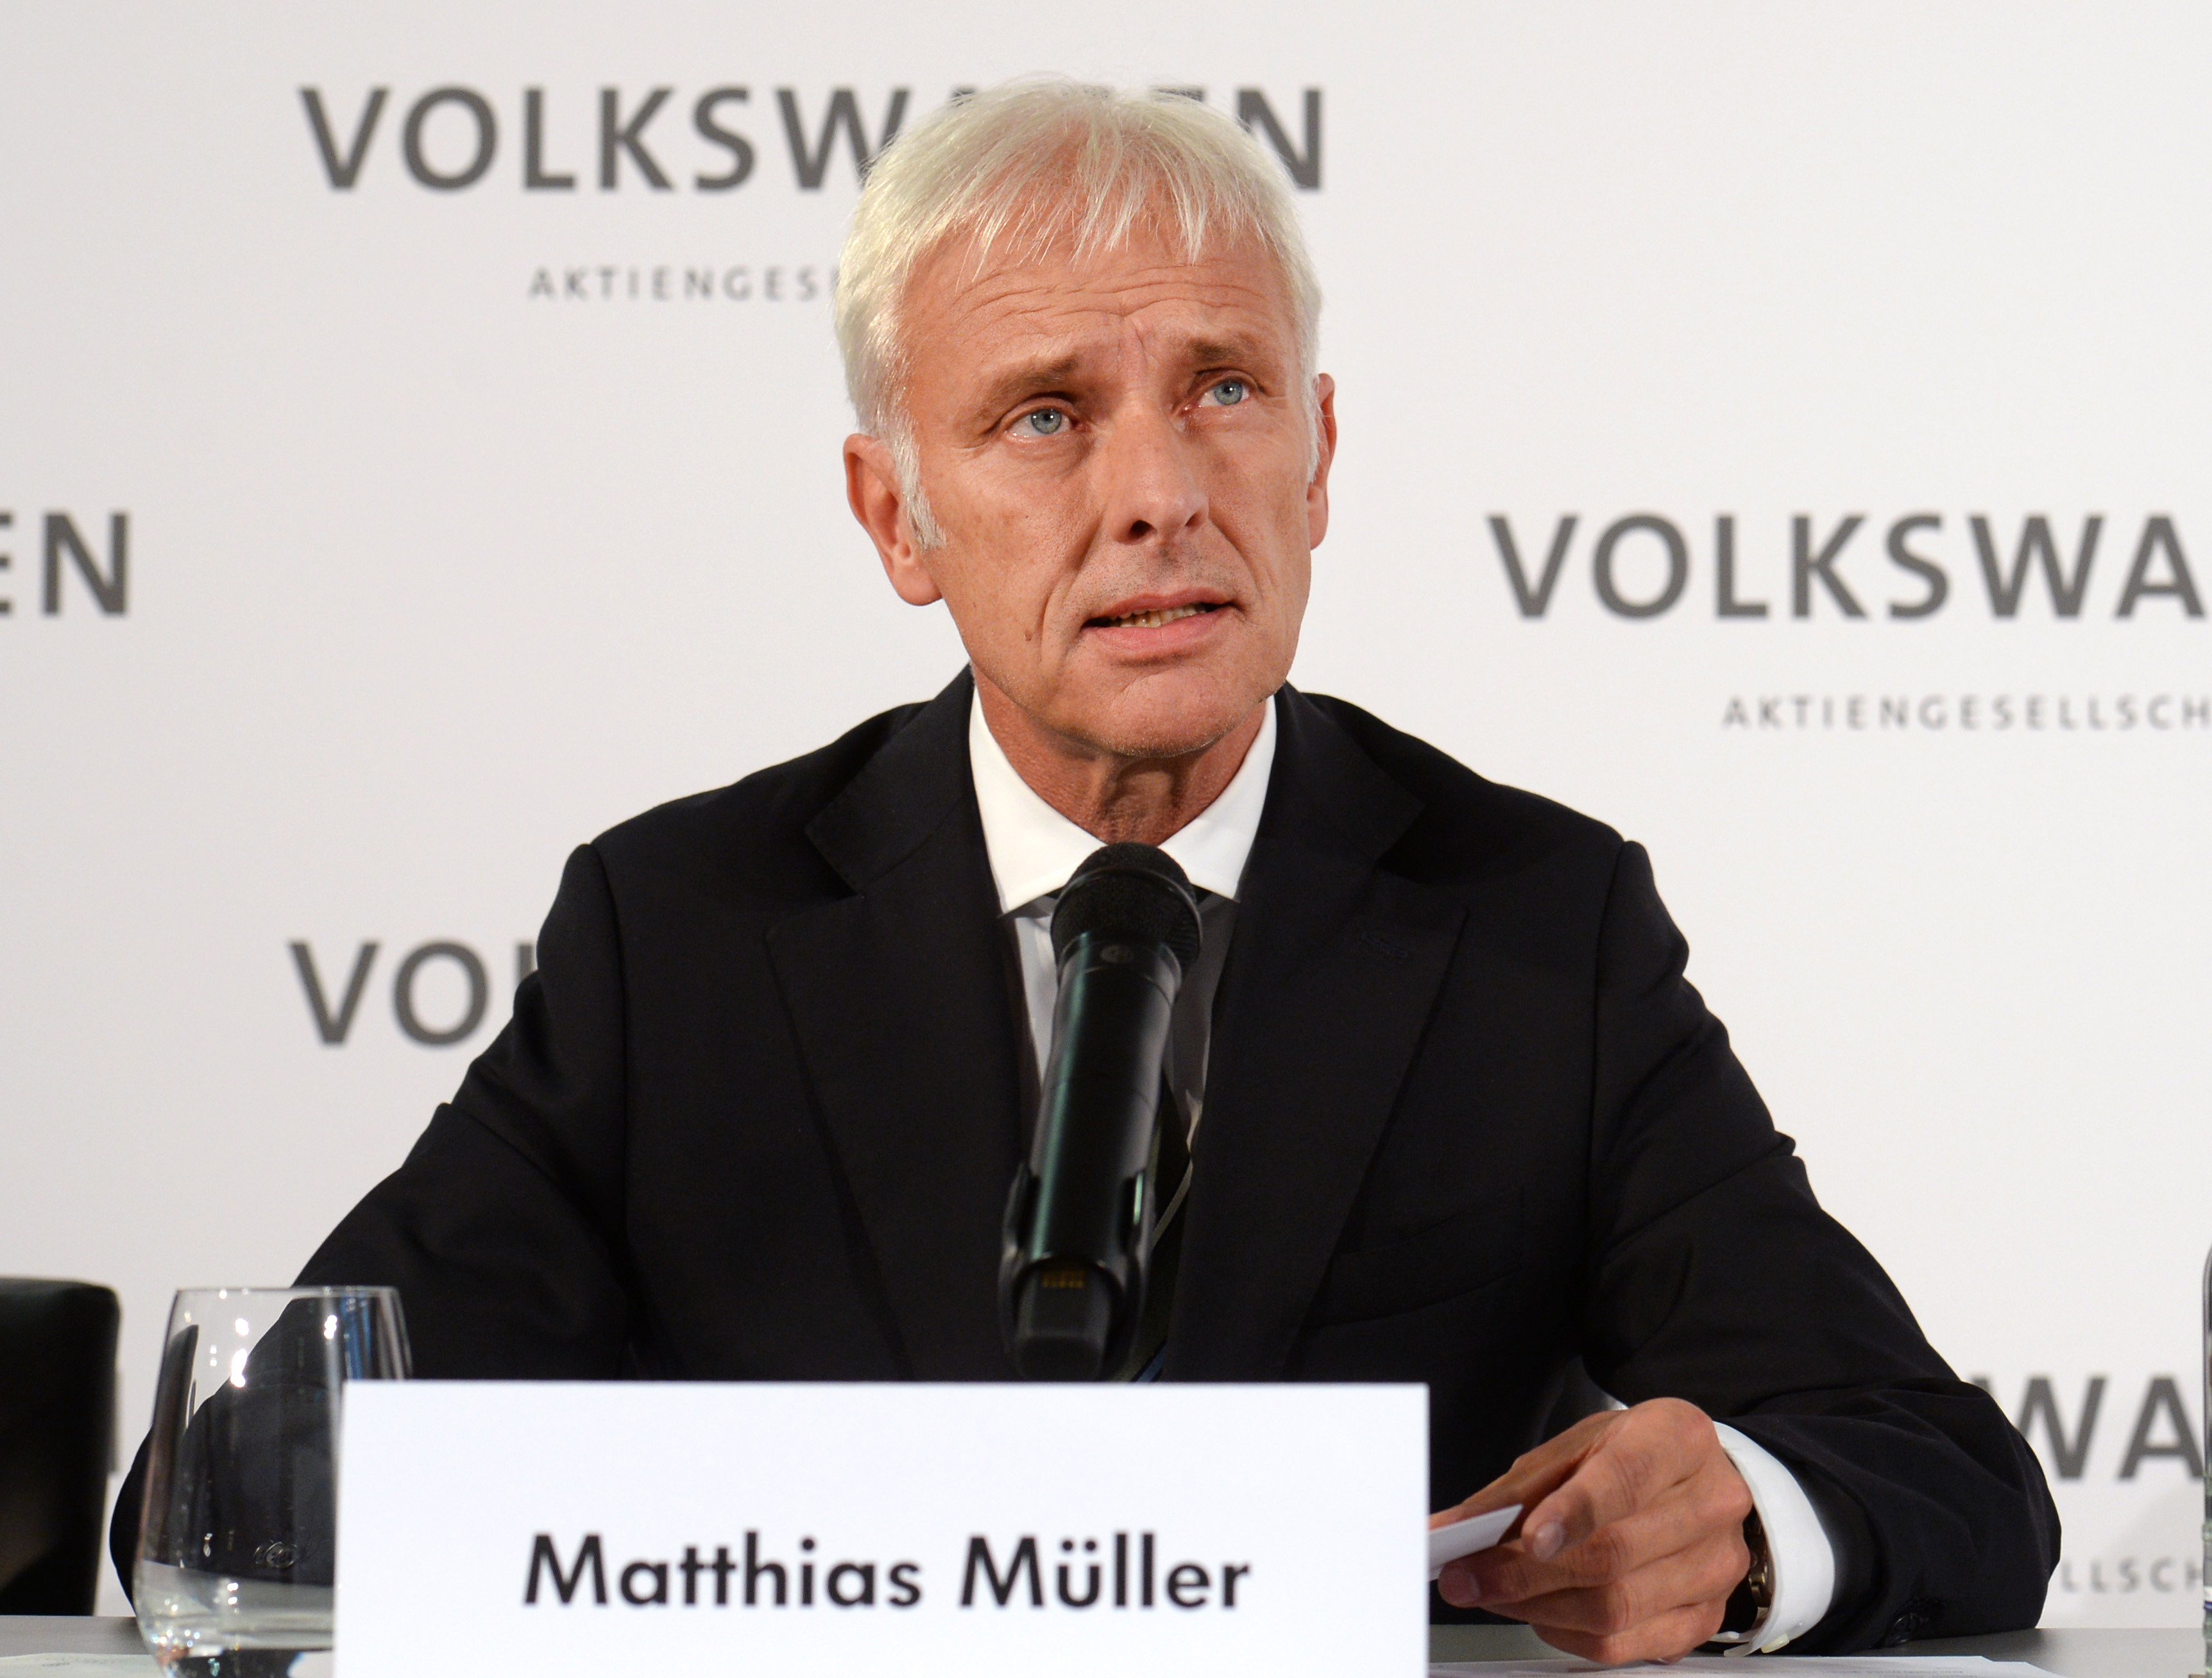 Matthias Müller, the new chief executive of Volkswagen, holds a press conference at the VW factory in in Wolfsburg, Germany, on Sept. 25, 2015